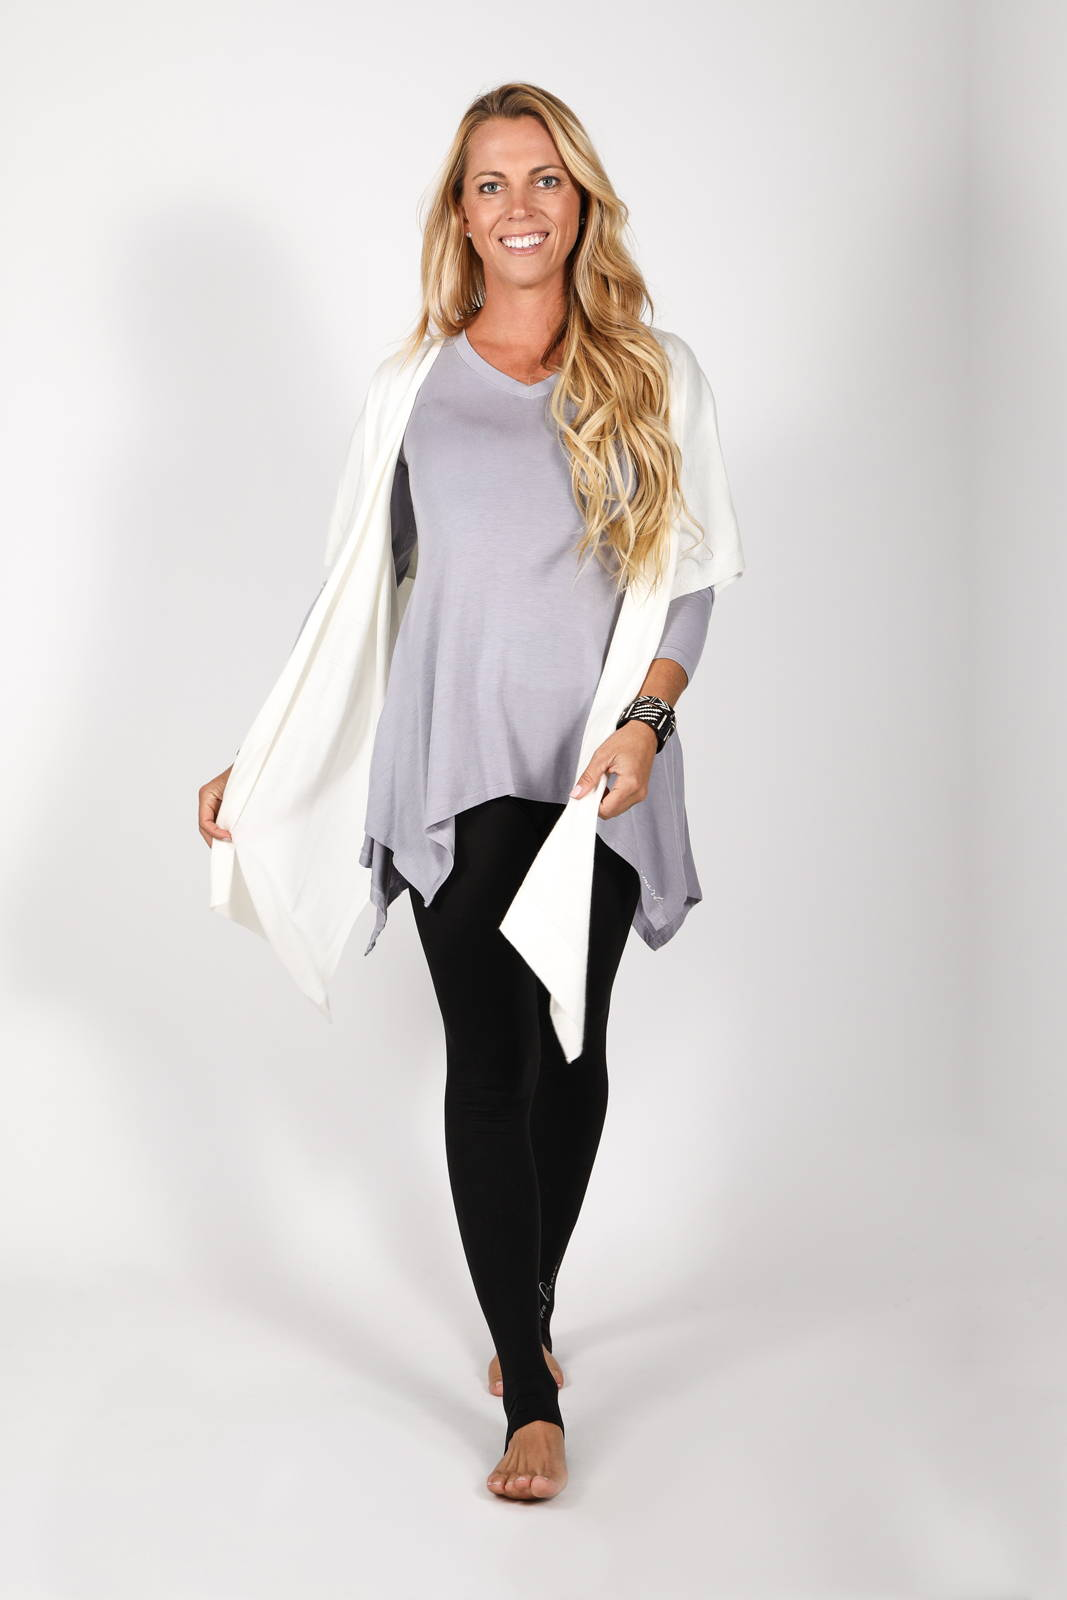 Model wearing the Solas Top with the Lux Kimono in White and the Lumo Legging by illuminative